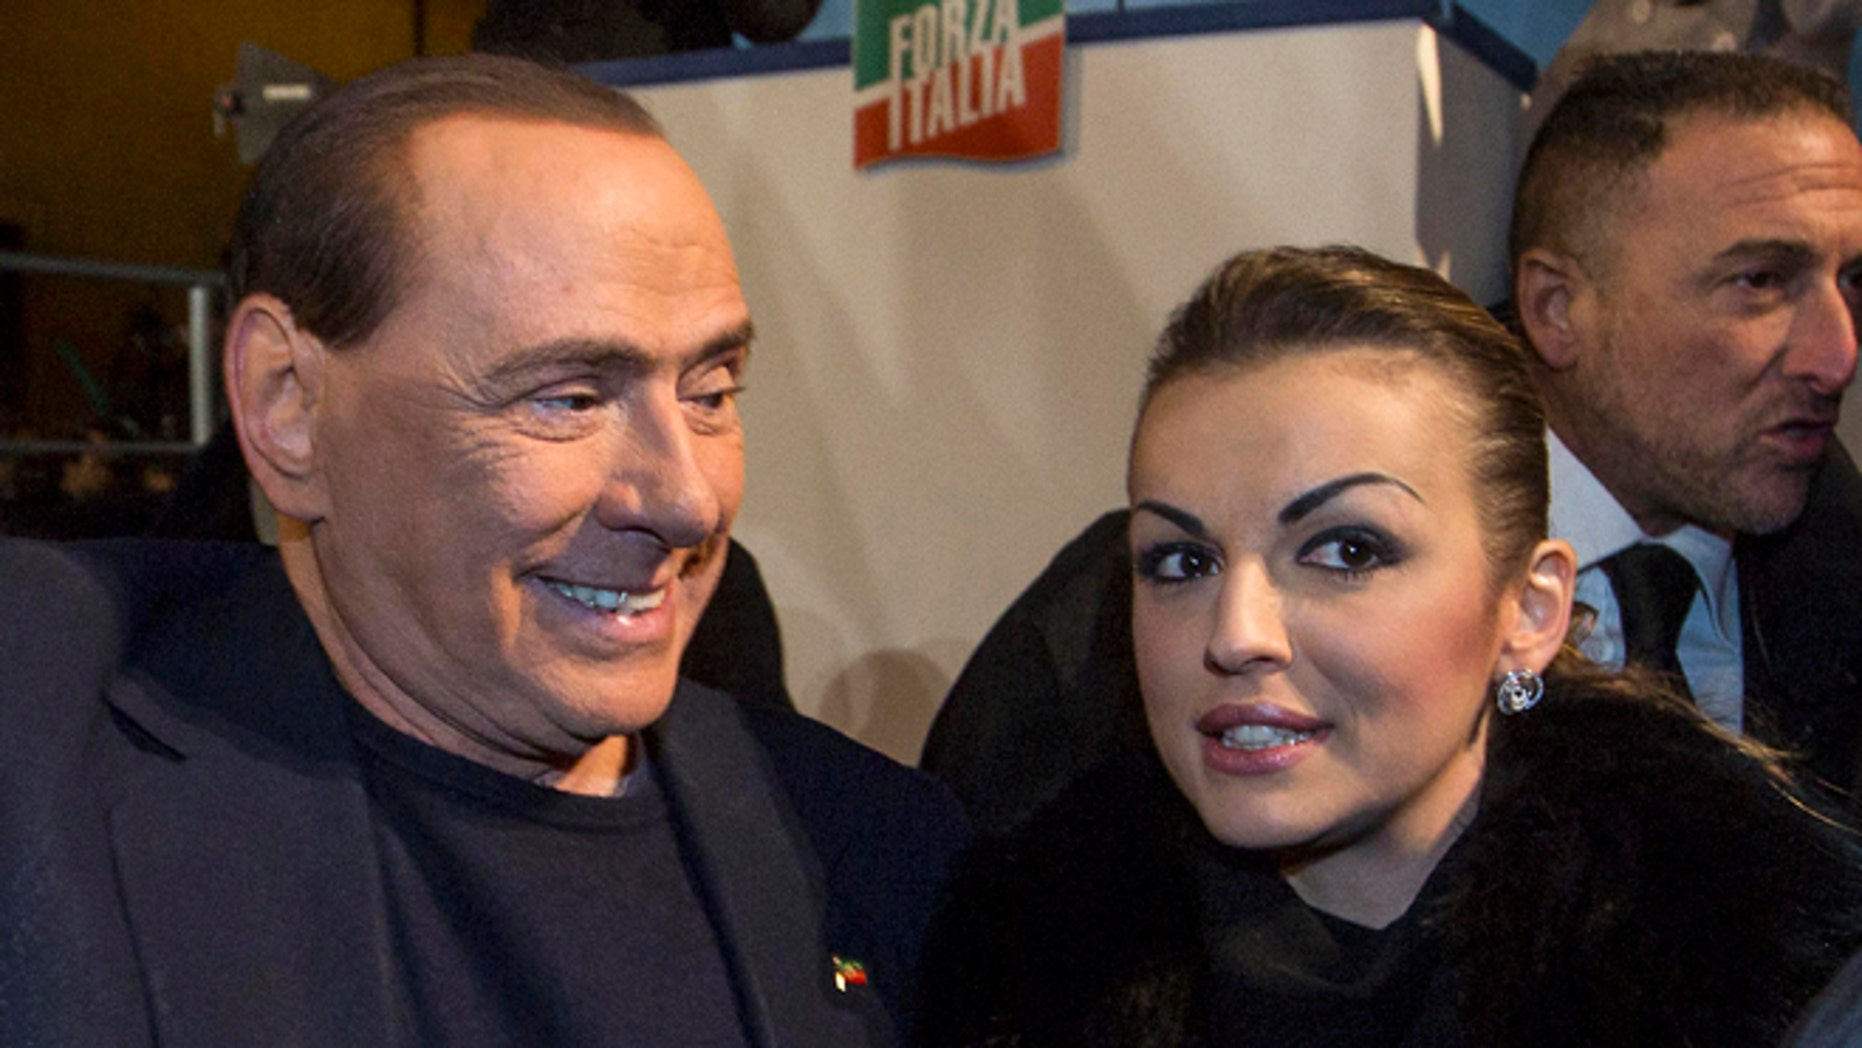 Nov. 27, 2013: Silvio Berlusconi, left, is flanked by his girlfriend Francesca Pascale as he leaves after addressing a rally in Rome.